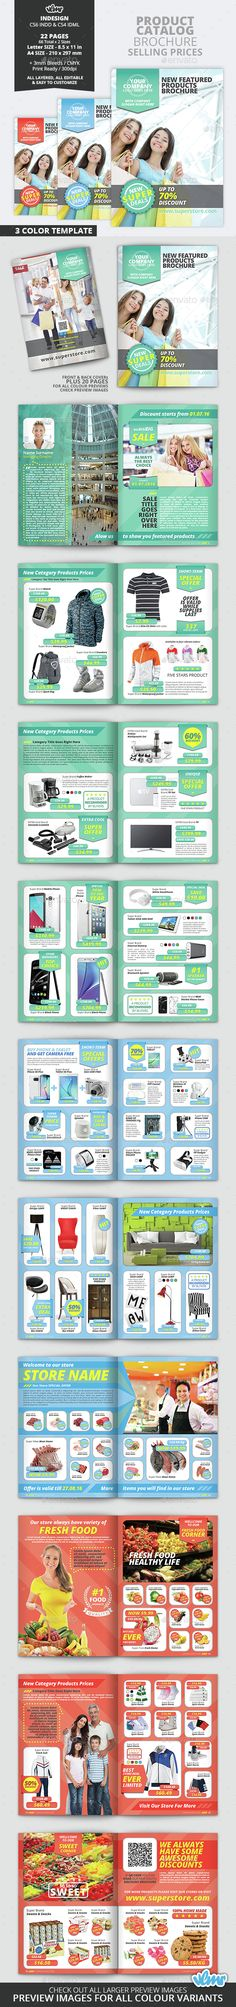 New Product Catalog / Brochure Selling Prices Template now avaliable at vlmr portfolio #a4 #action #brochure #business #buy #catalog #catalogue #closeout #dicount #hit #letter #multipurpouse #offer #order #price #pricebook #prices #product #productbrochure #productcatalog #products #sale #salesroom #sell #selling #sellout #shop #shopping #store #template #promotion #action #new #prices #great #template #products #flyer #super #shoppingmall #universal #multipurpouse #great #shoppingholic…